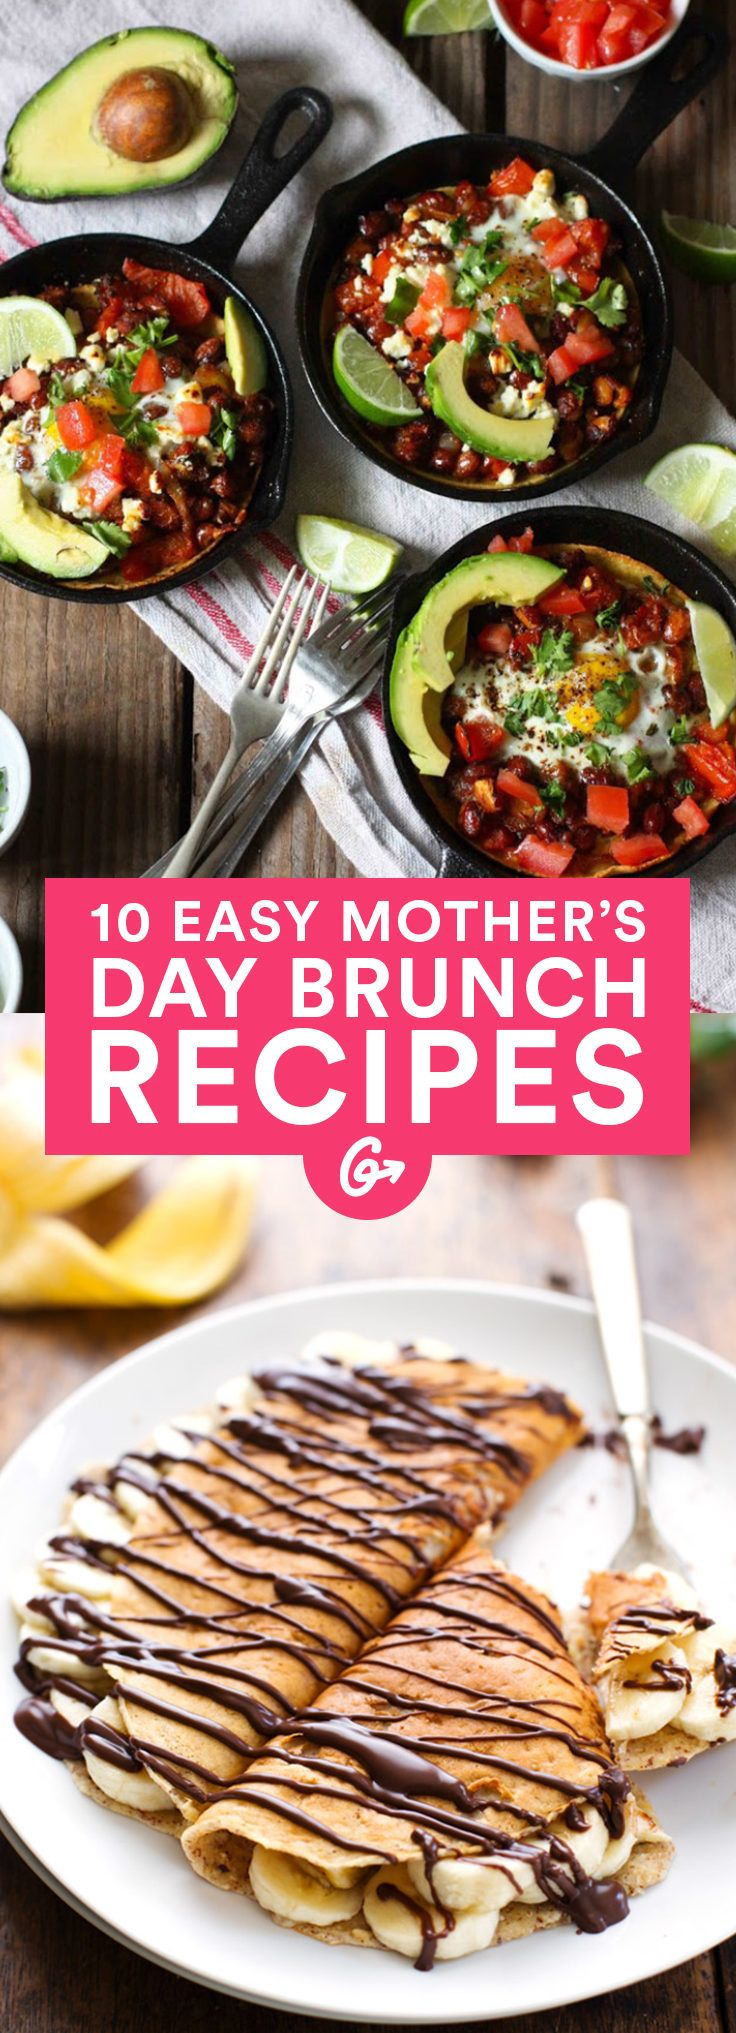 Show mom some love on Sunday with these easy-to-make meals—bottomless blood orange mimosas included. #brunch #recipes http://greatist.com/eat/10-easy-brunch-recipes-mothers-day